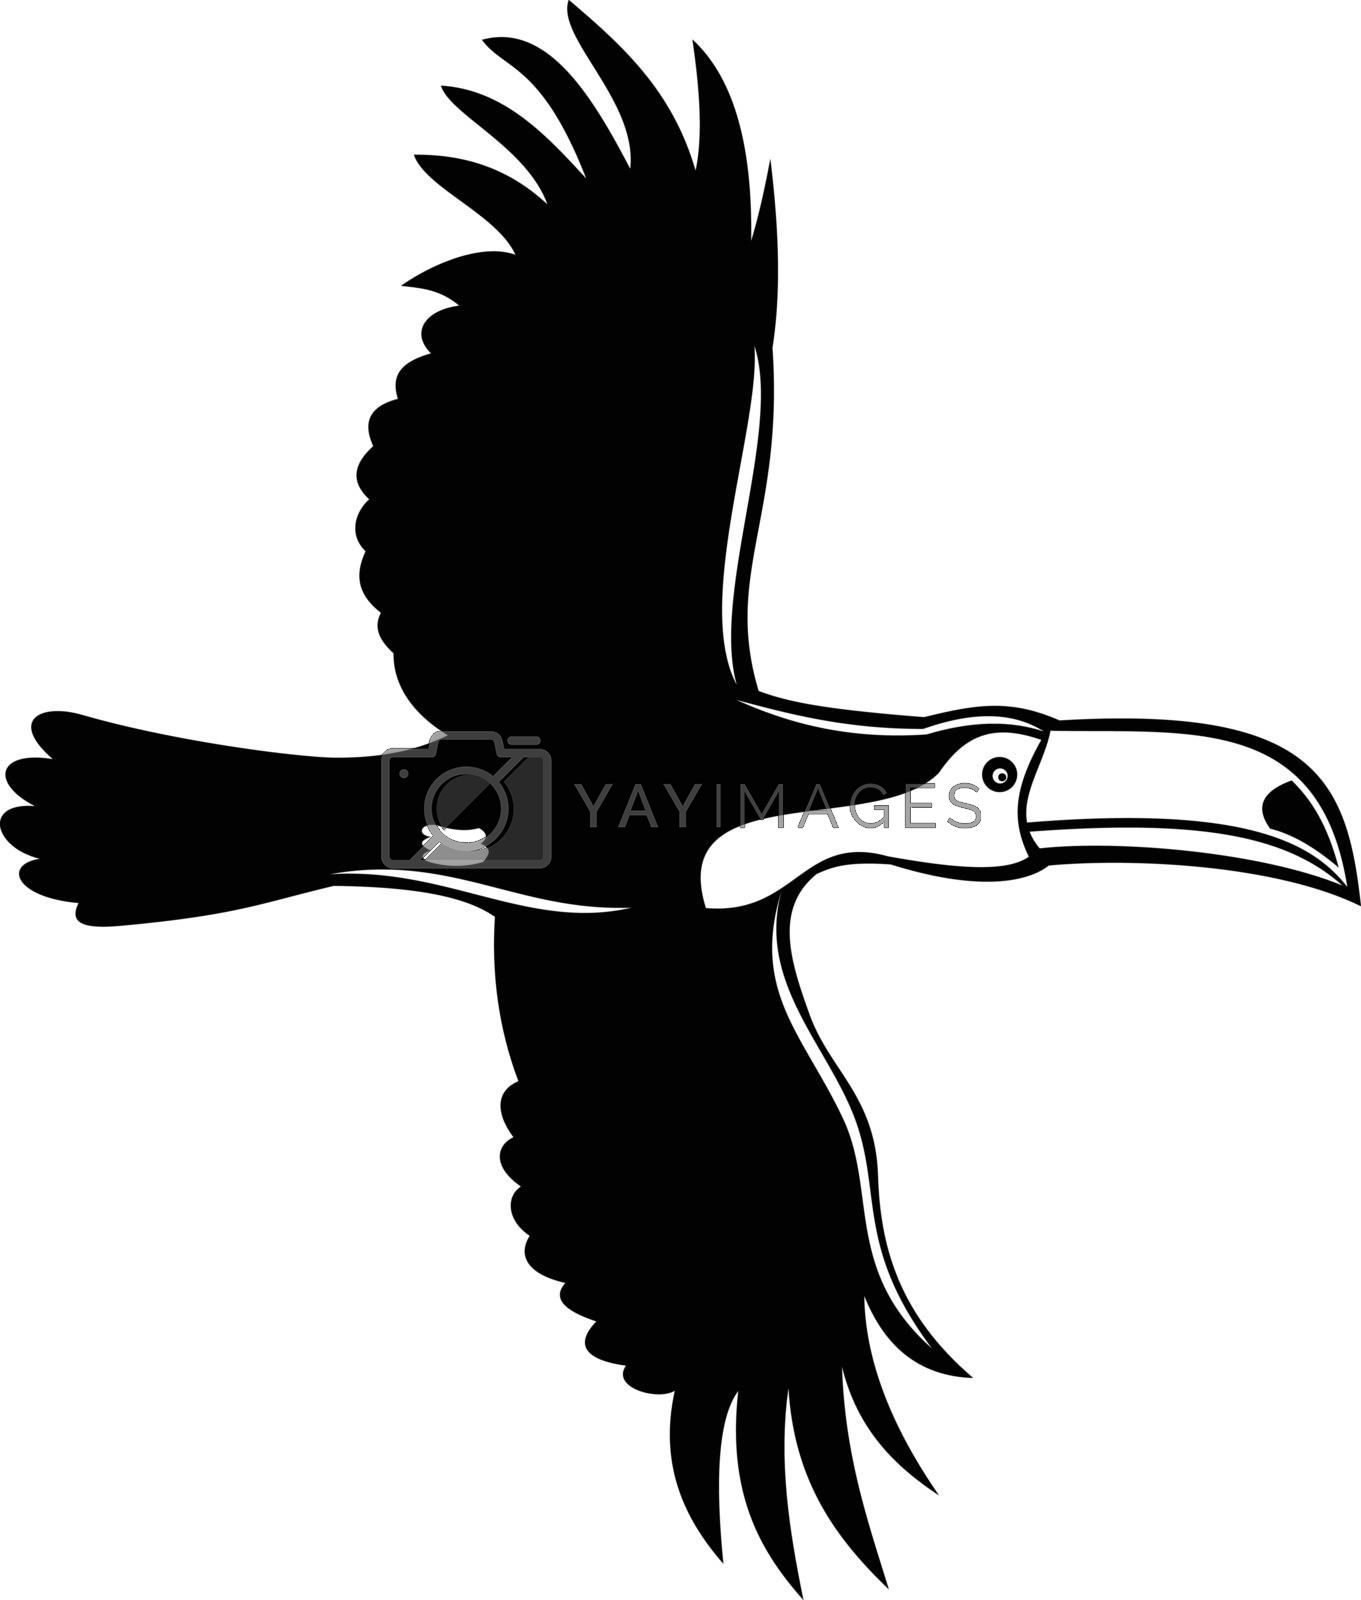 Stencil illustration of a toco toucan, Ramphastos toco, common toucan or giant toucan, flying viewed from side on isolated background done in black and white retro style.